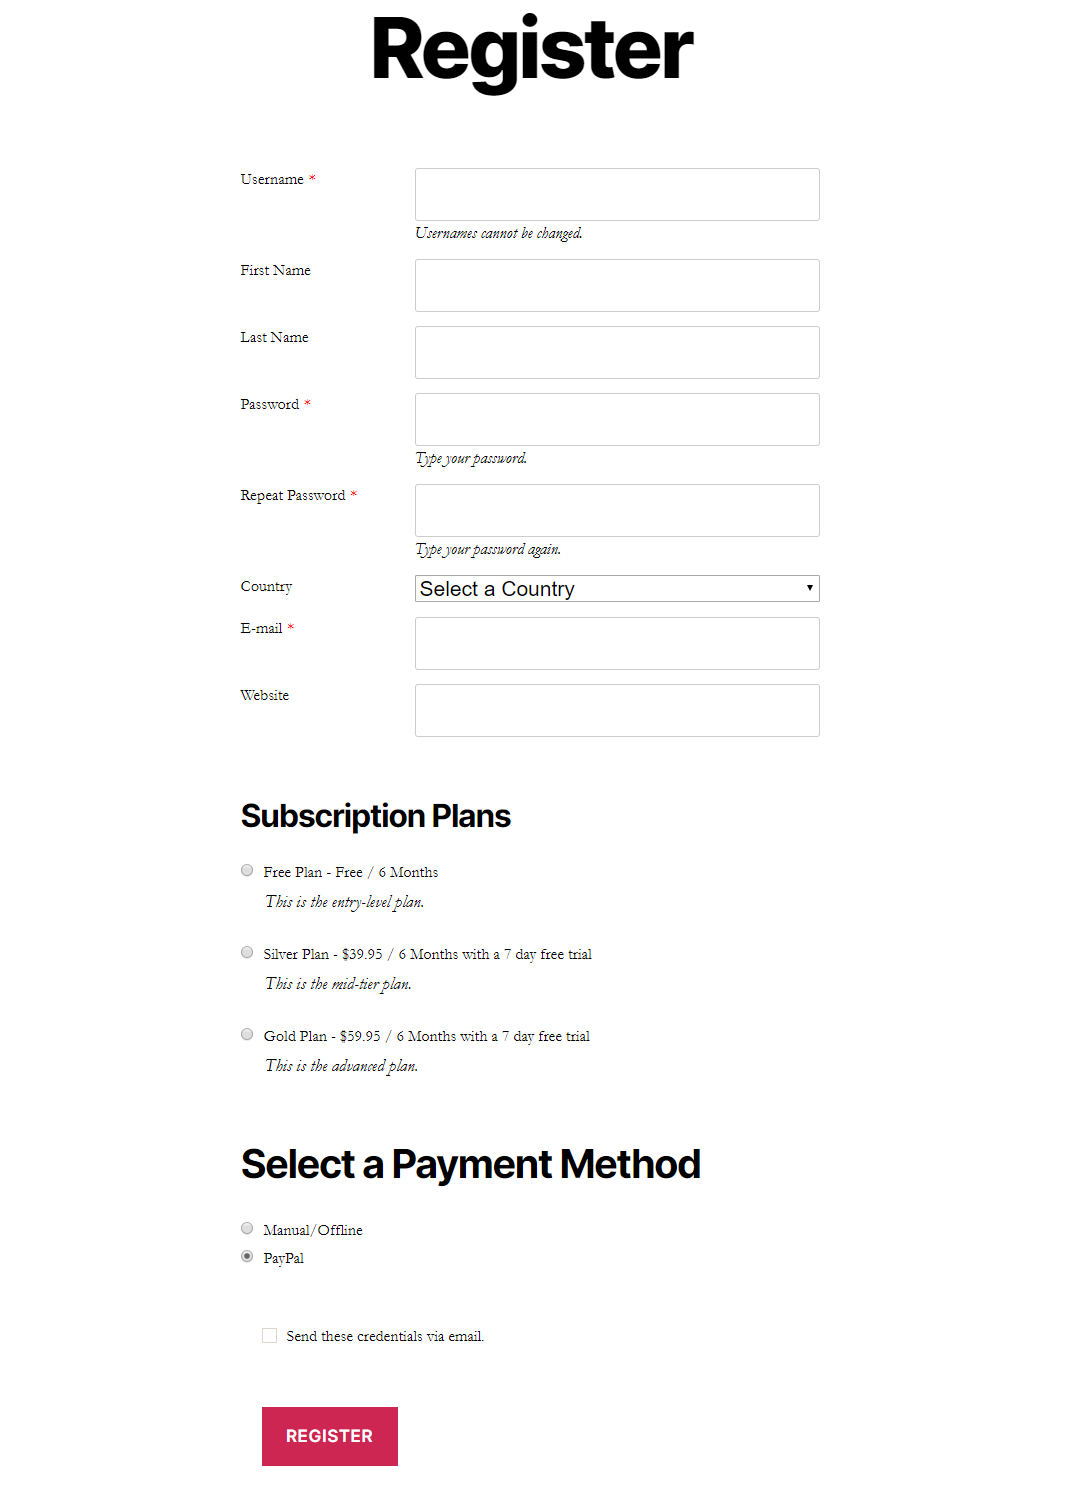 Registration form with subscription plans